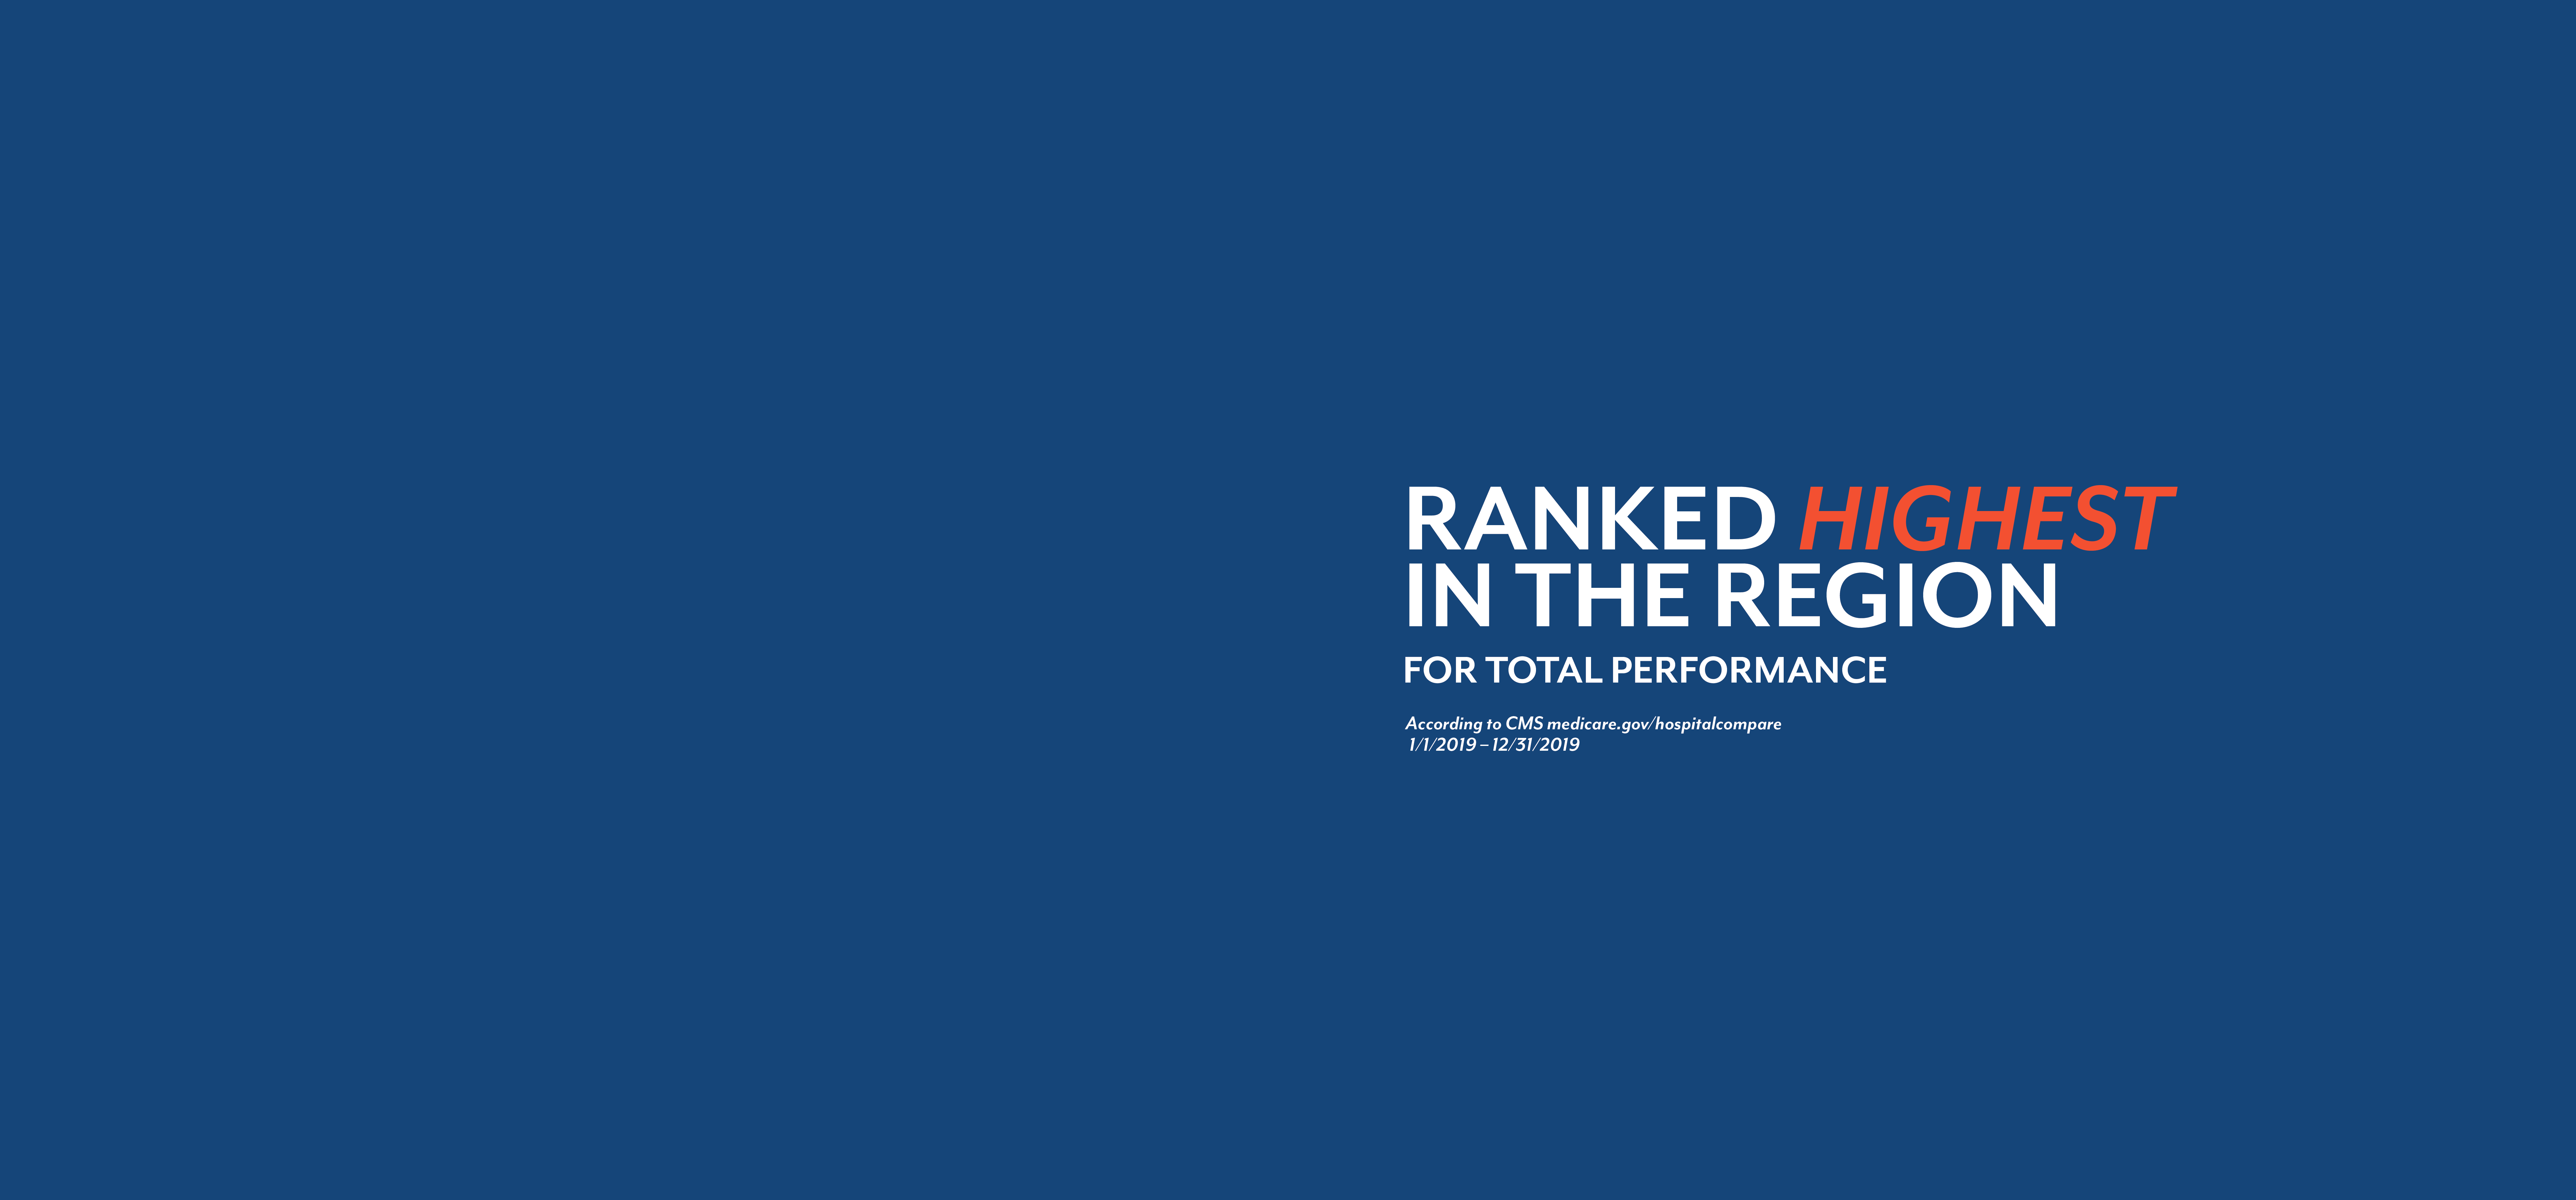 Ranked Highest in the Region